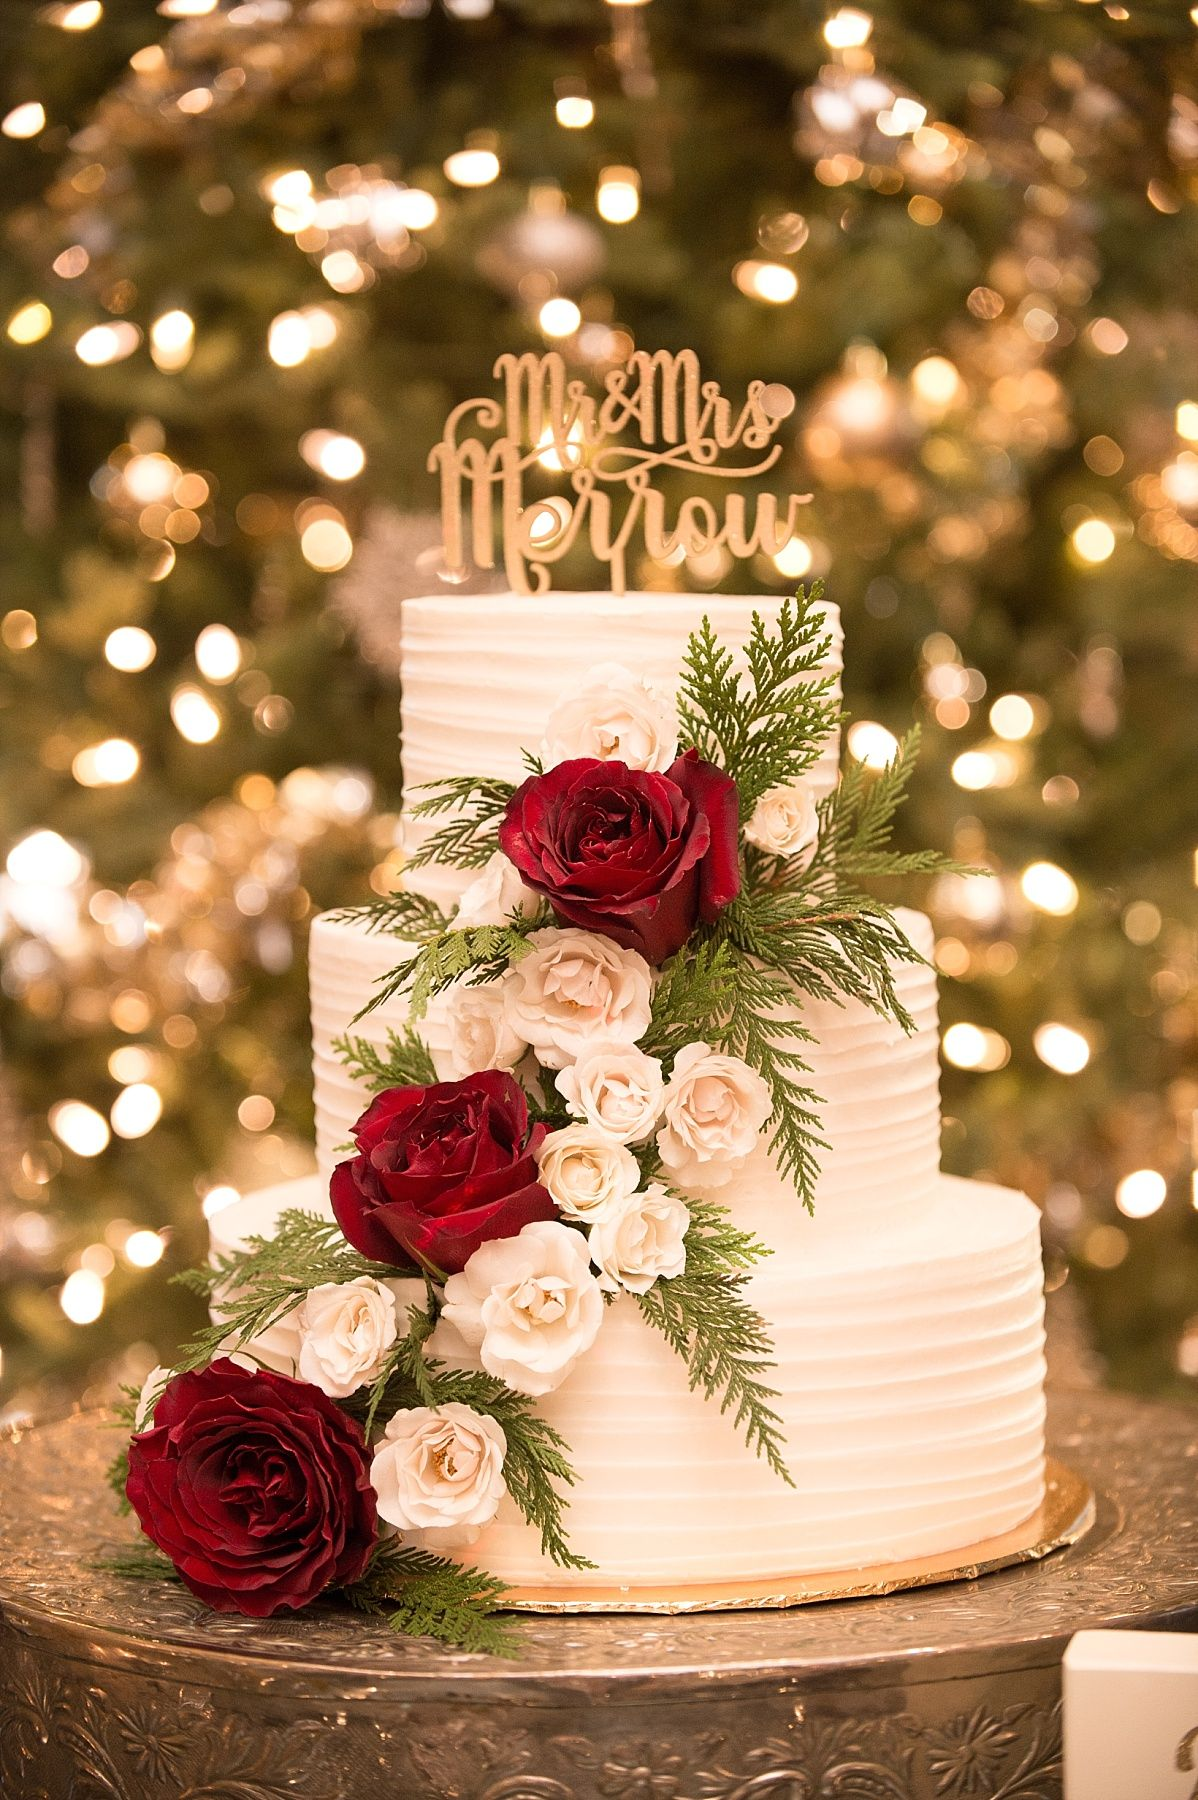 Three Tier White Wedding Cake With Flowers